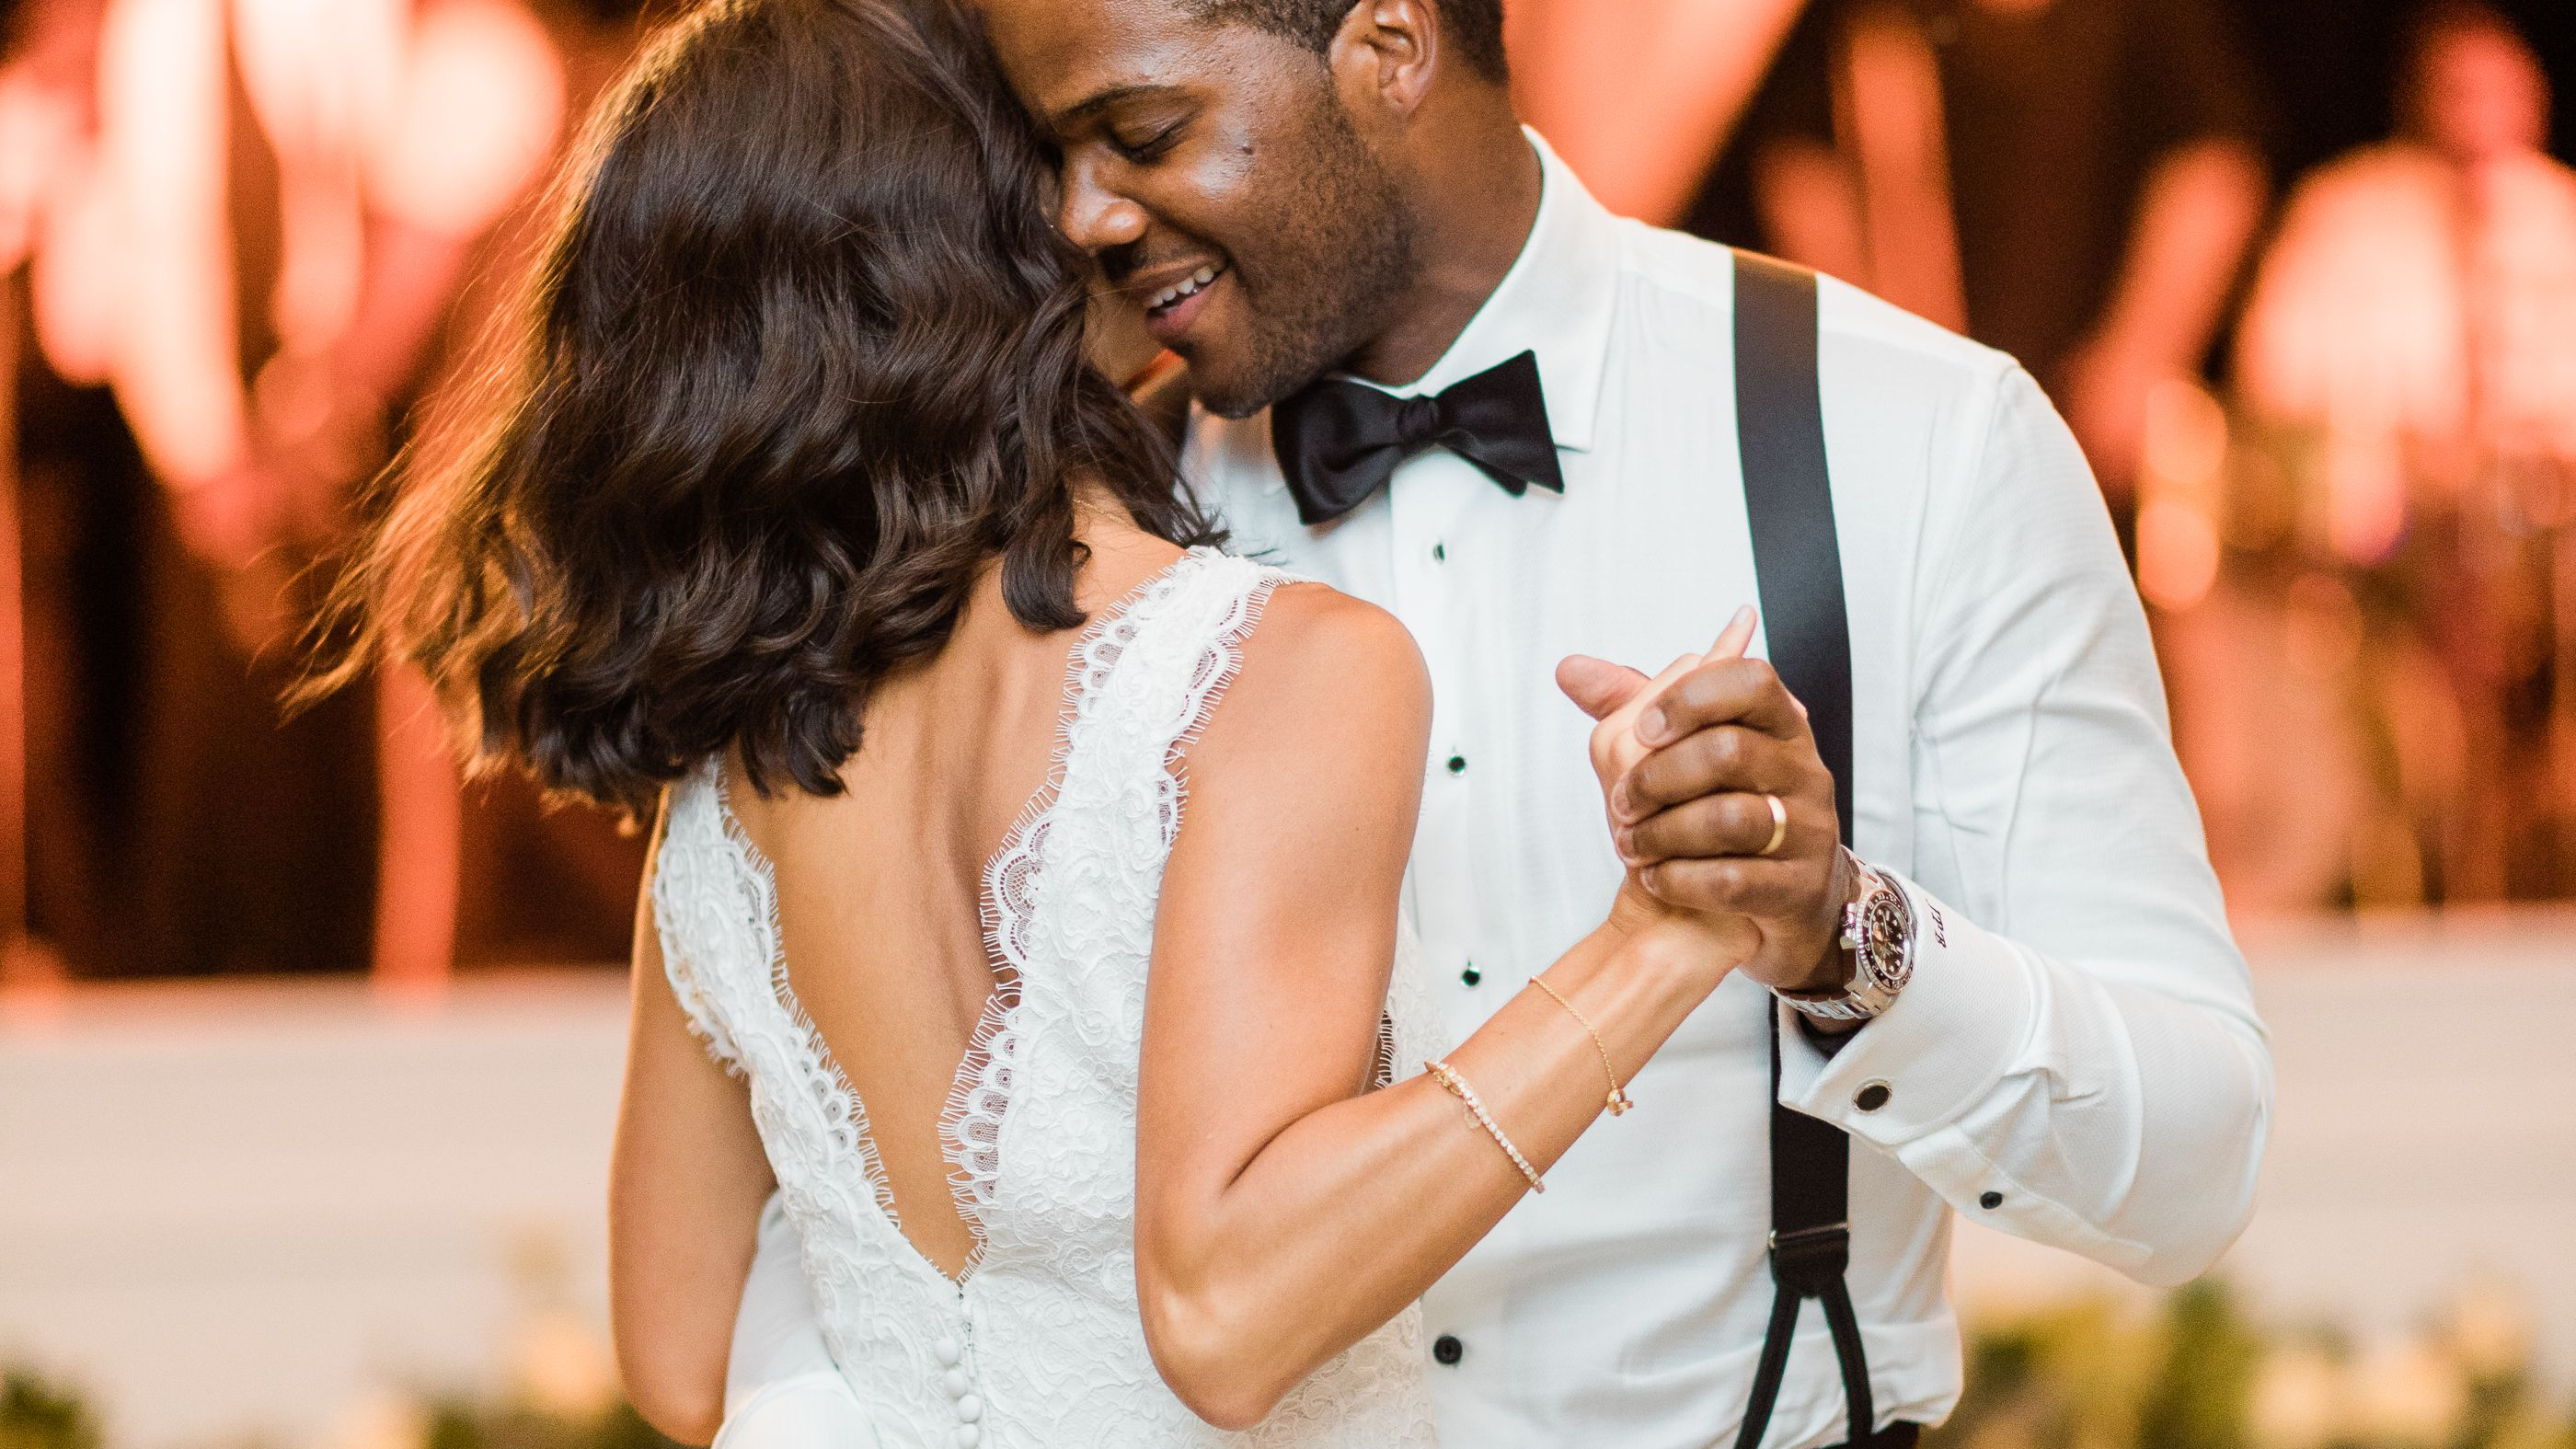 34 Best First Dance Songs That Are Unique